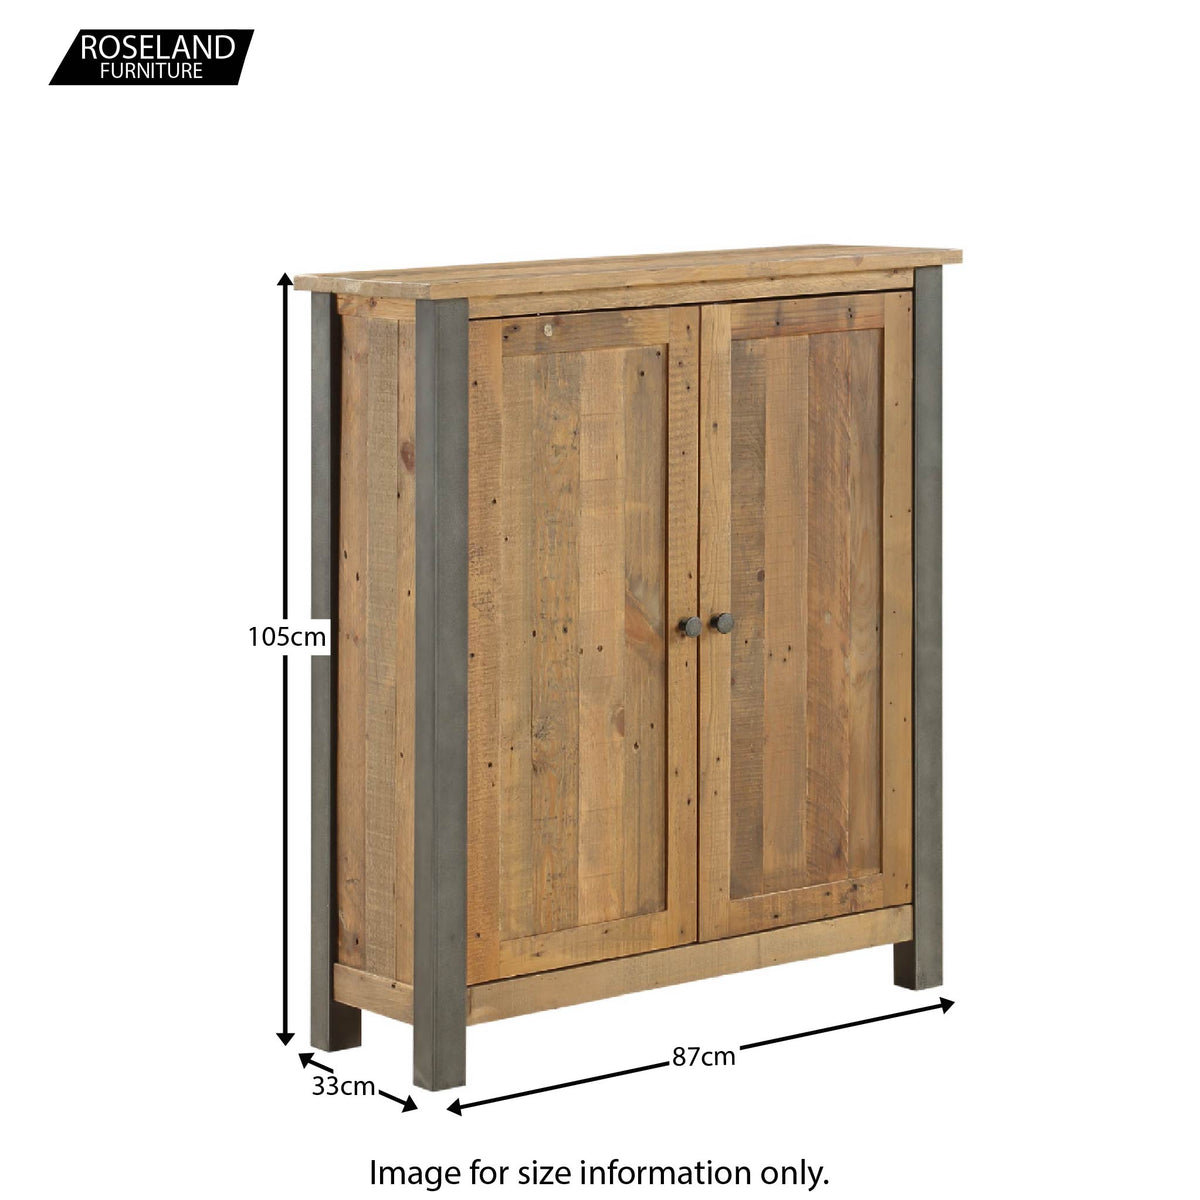 Dimensions for Urban Elegance Reclaimed Wood Shoe Storage Cupboard 105 x 87 x 33 cm